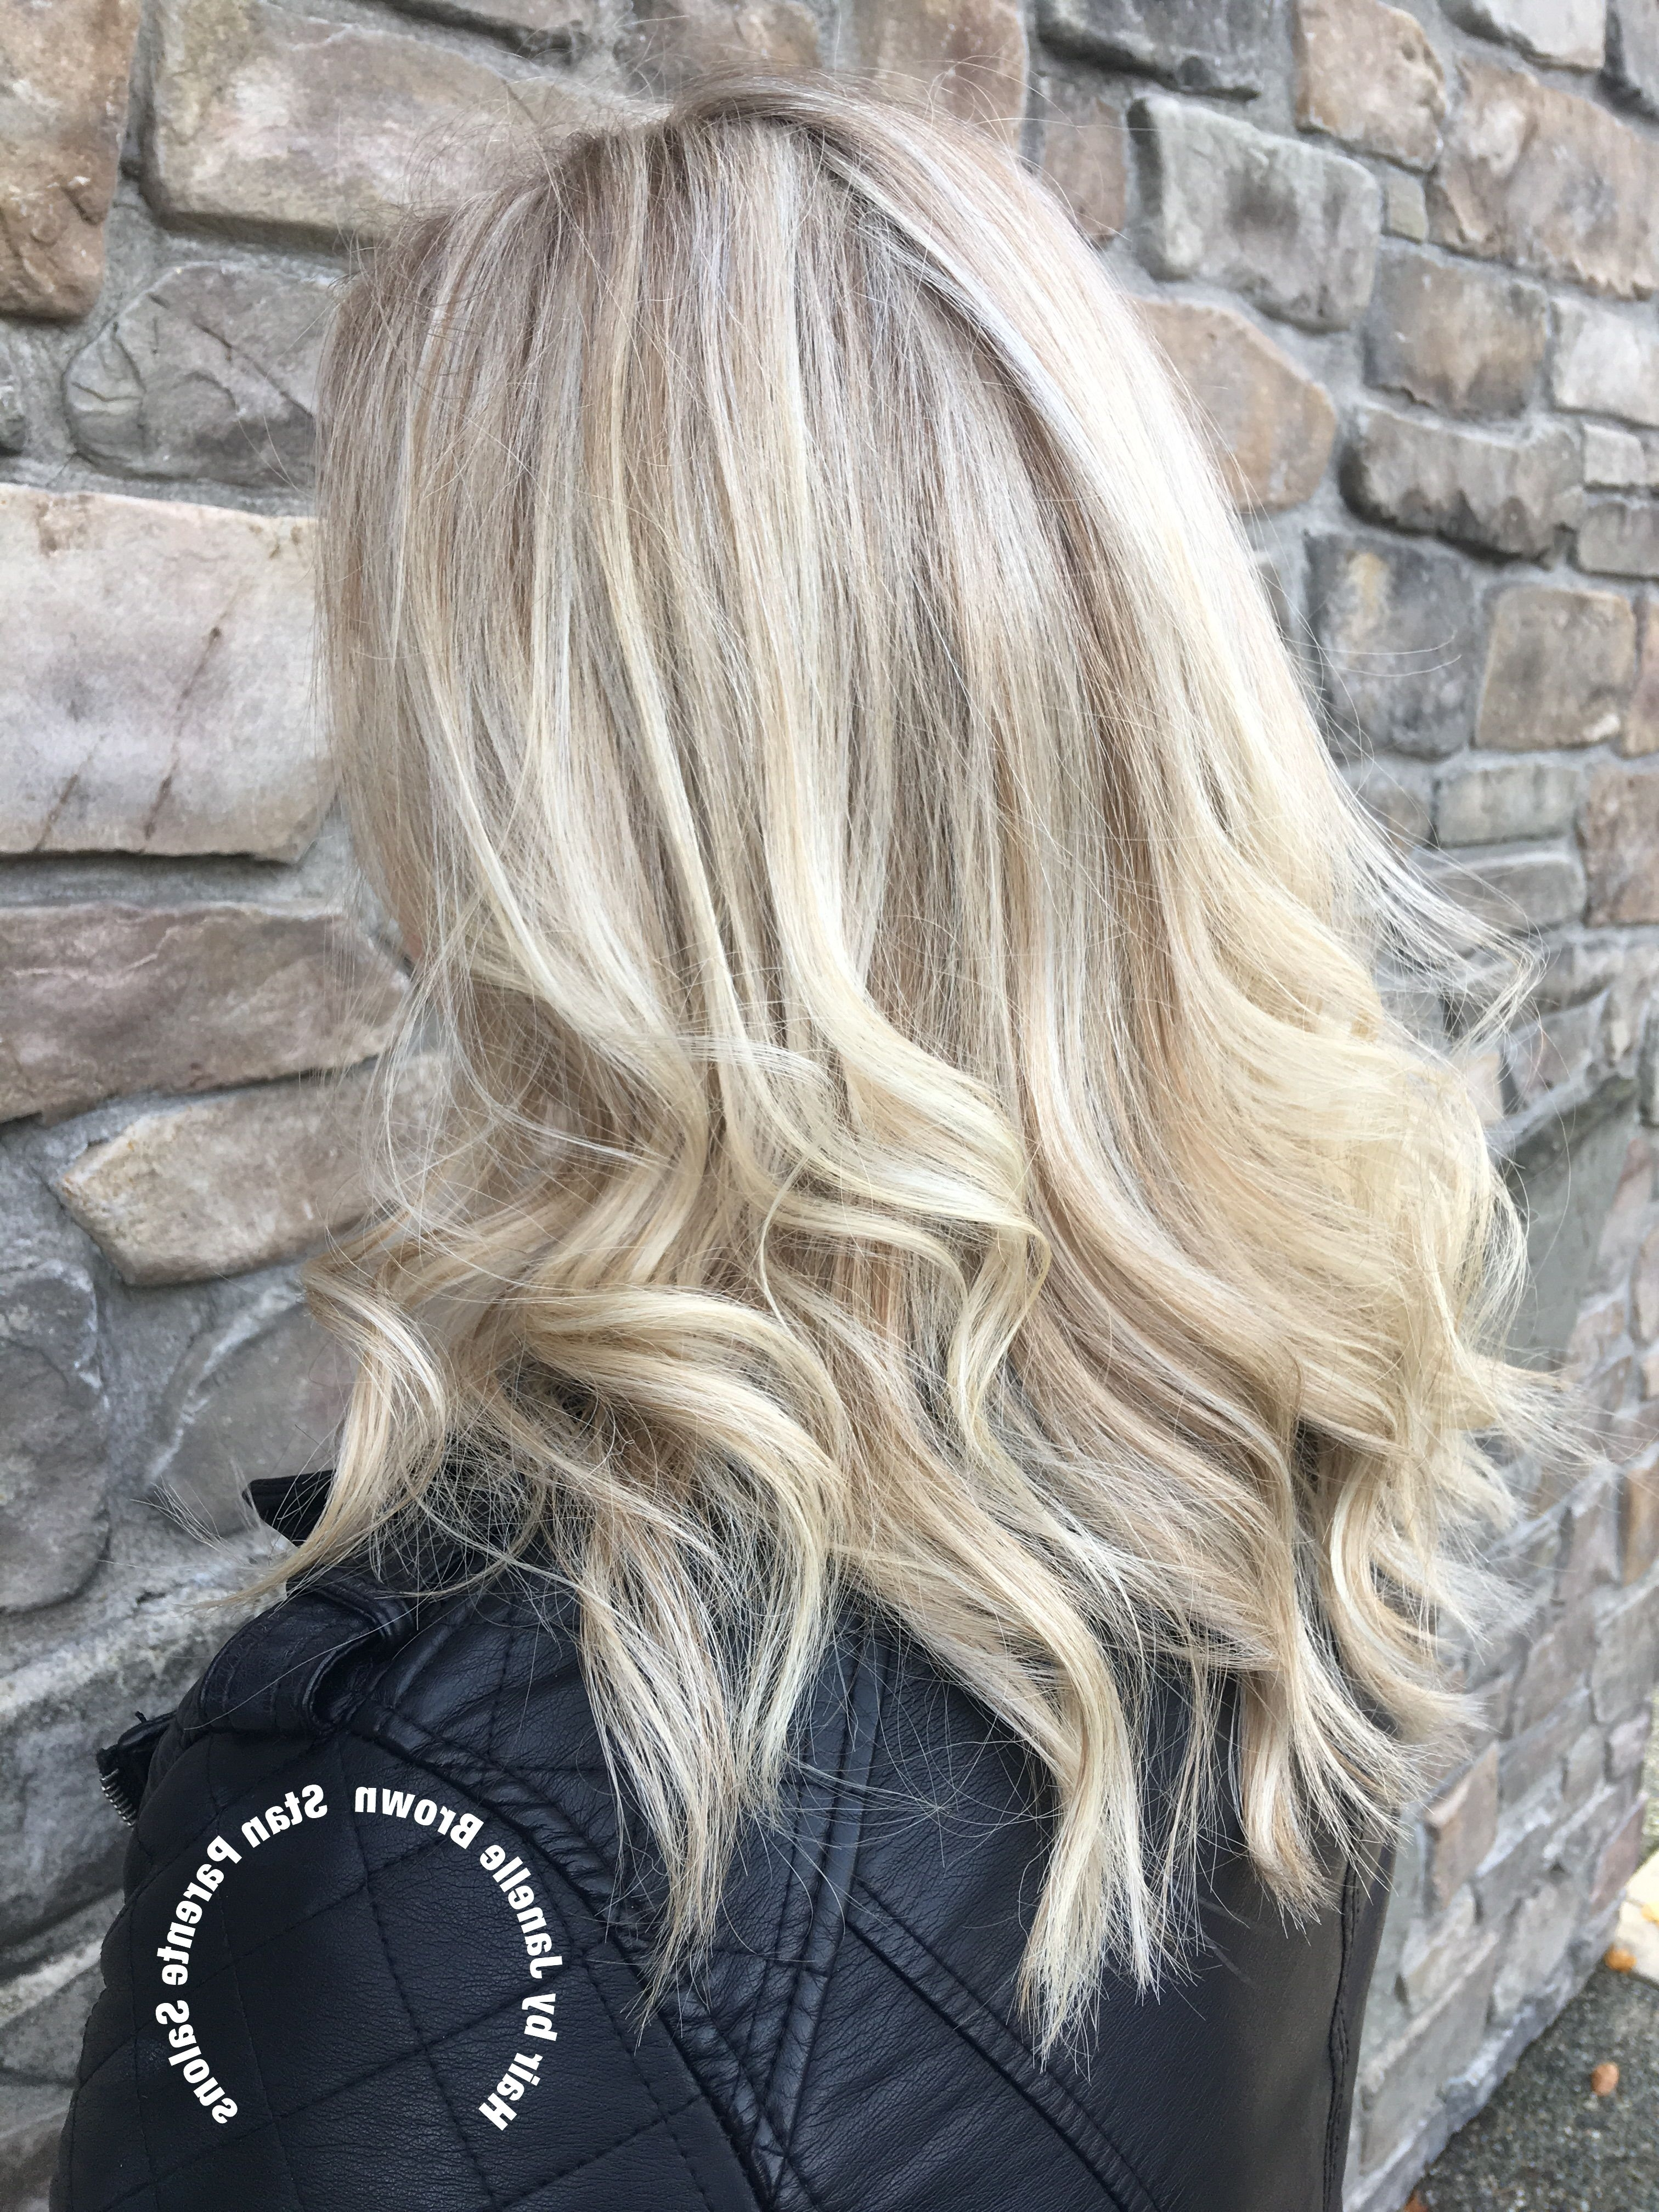 2017 Maple Bronde Hairstyles With Highlights Within Hairjanelle Brown Stan Parente Salon Maple Valley Icy Blonde (View 1 of 20)